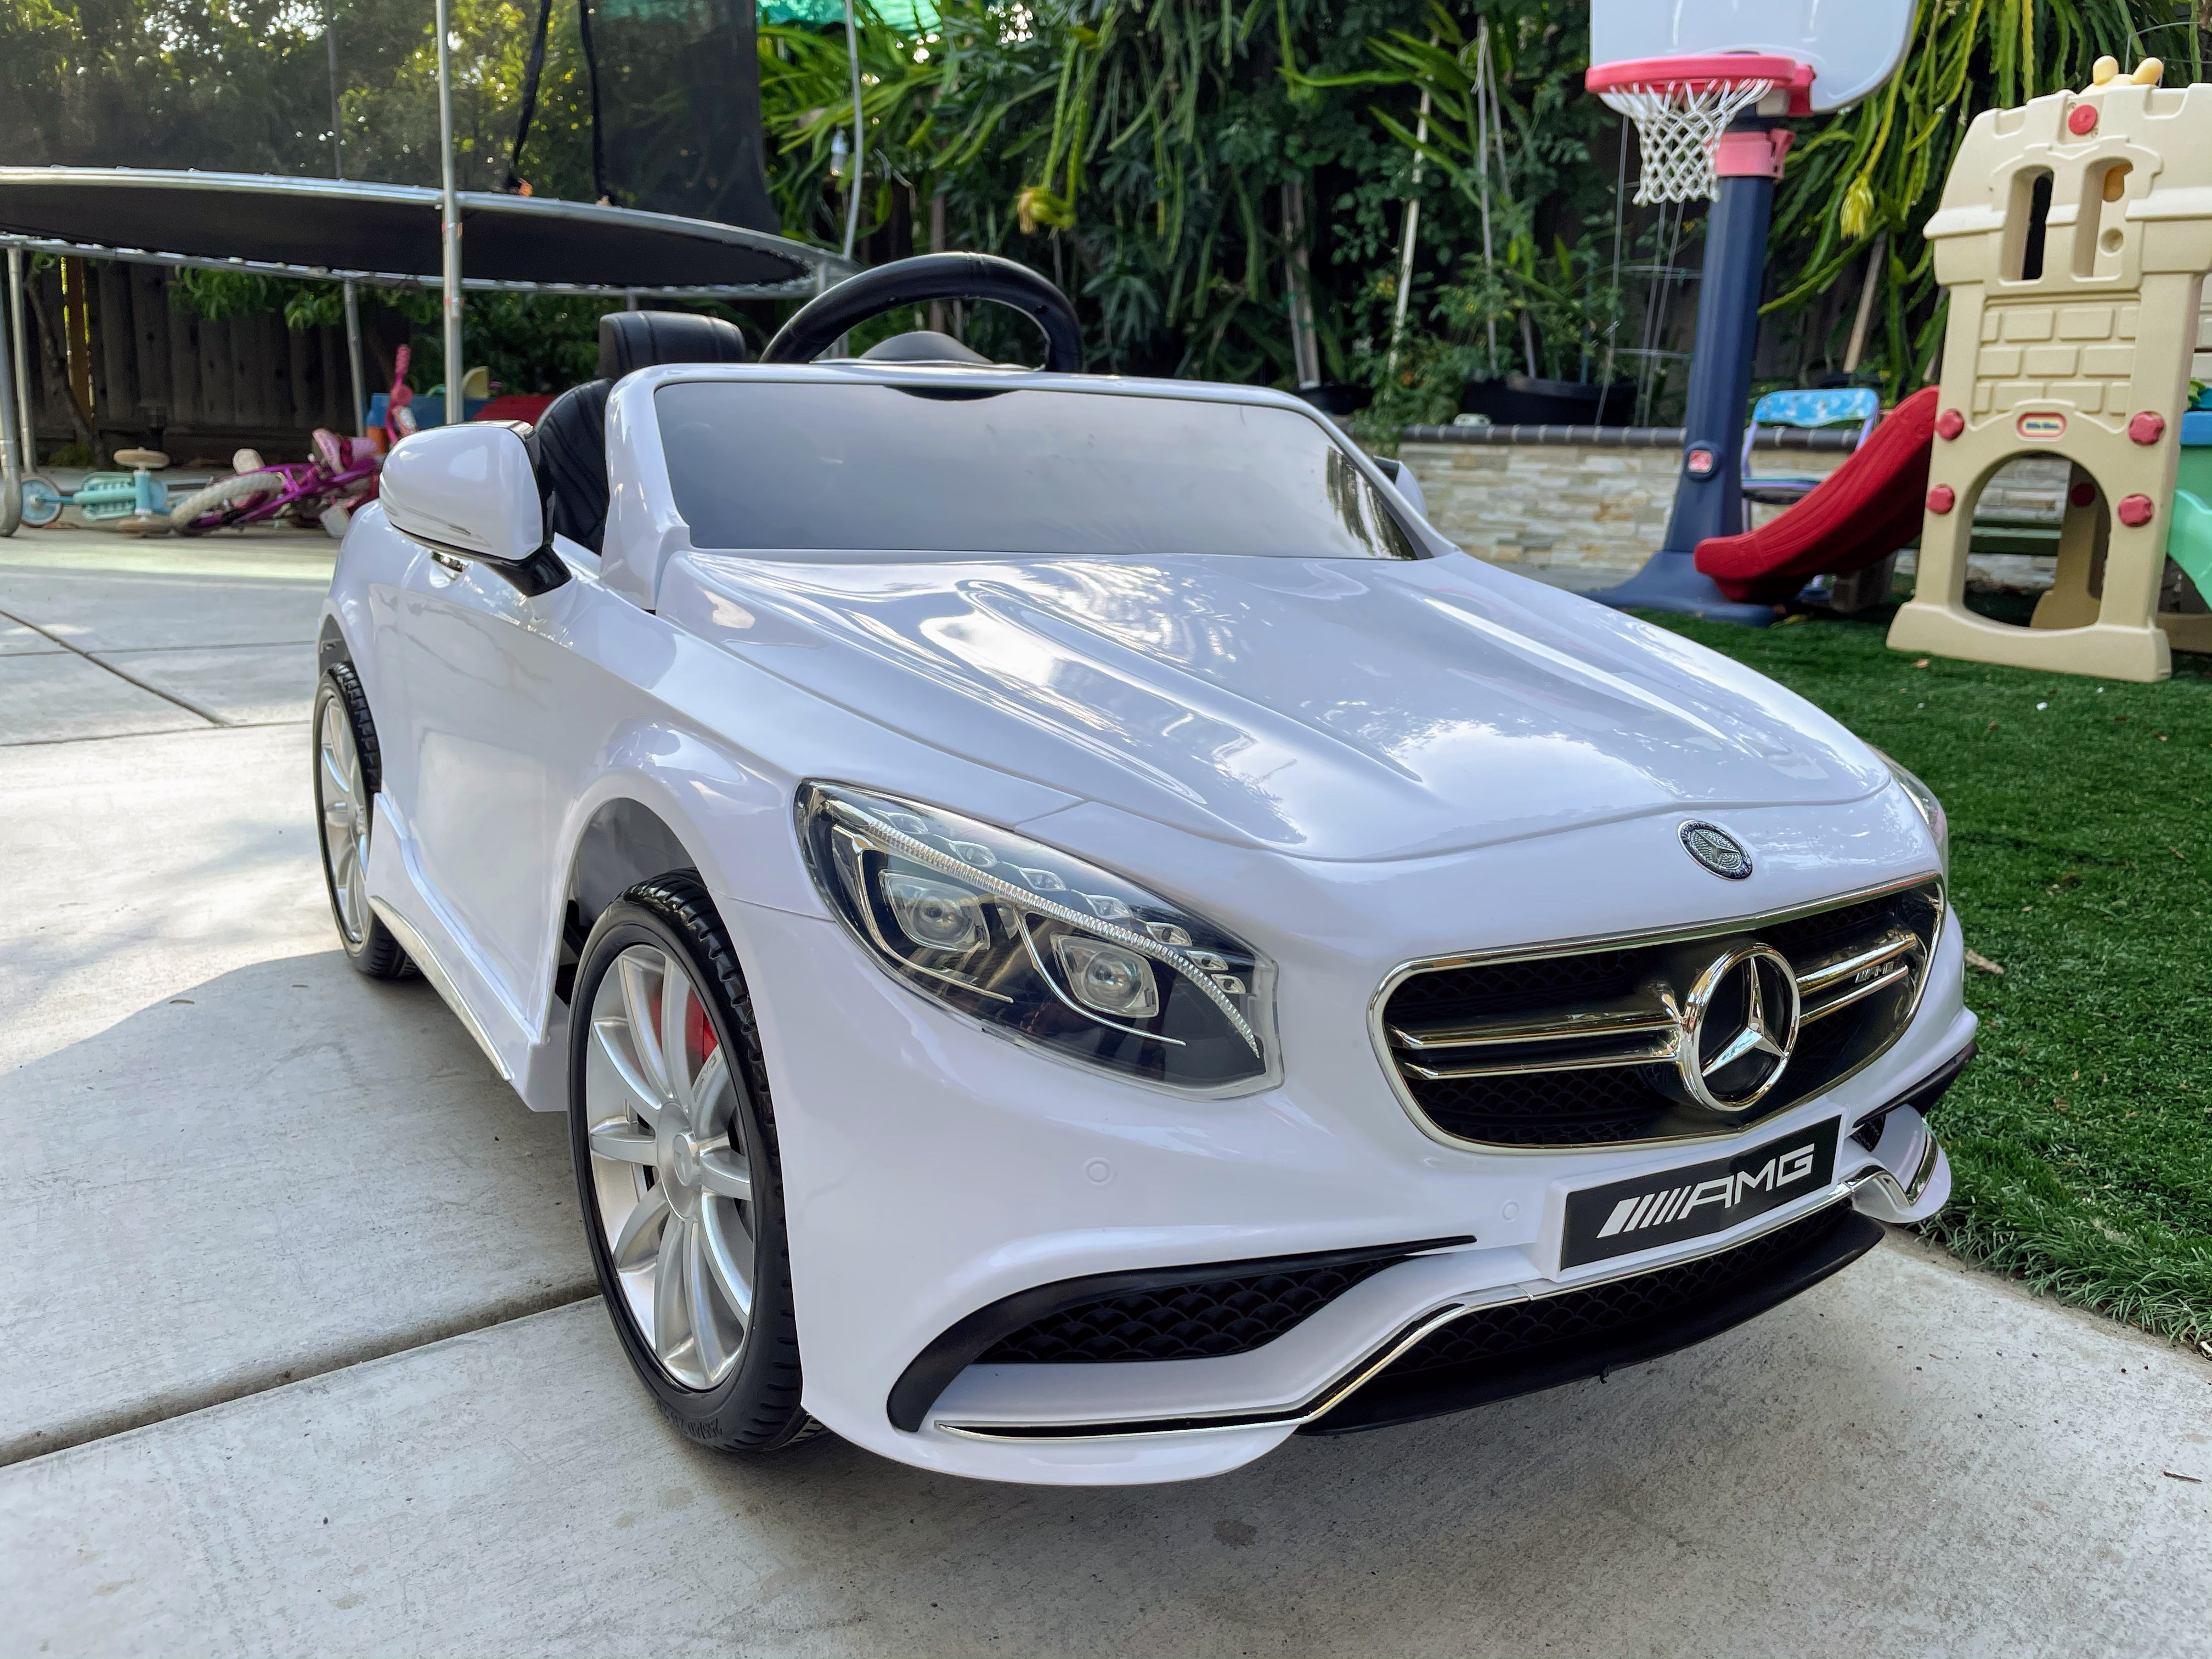 MercedesBenz GLC Licensed Kid's Electric Toy Car Vehicle, White photo review